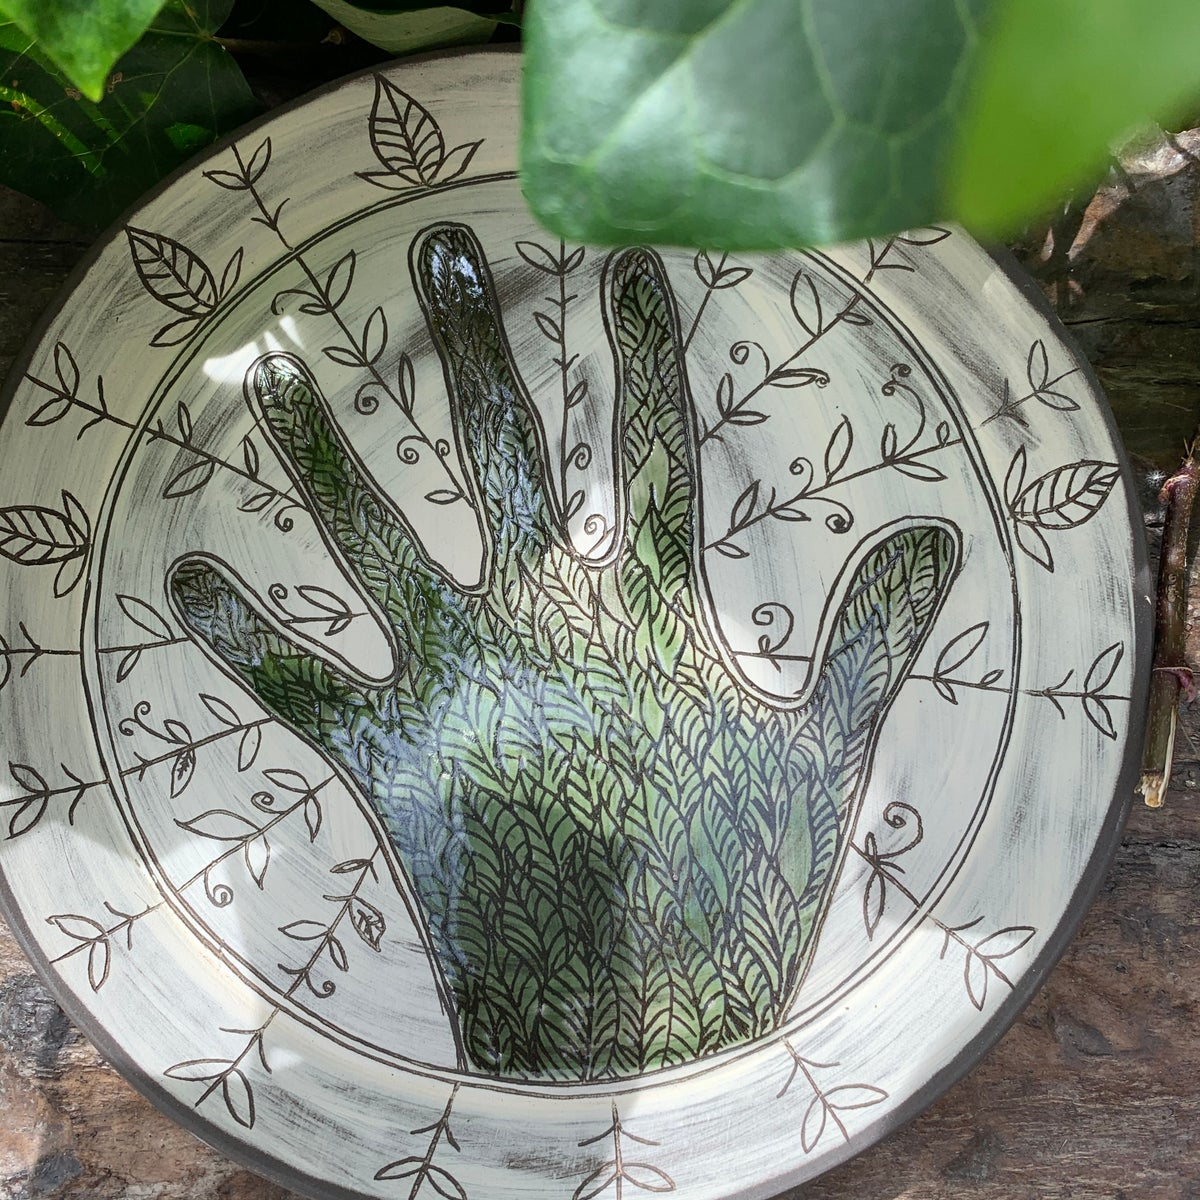 Green fingers plate, No2. 21.5cm